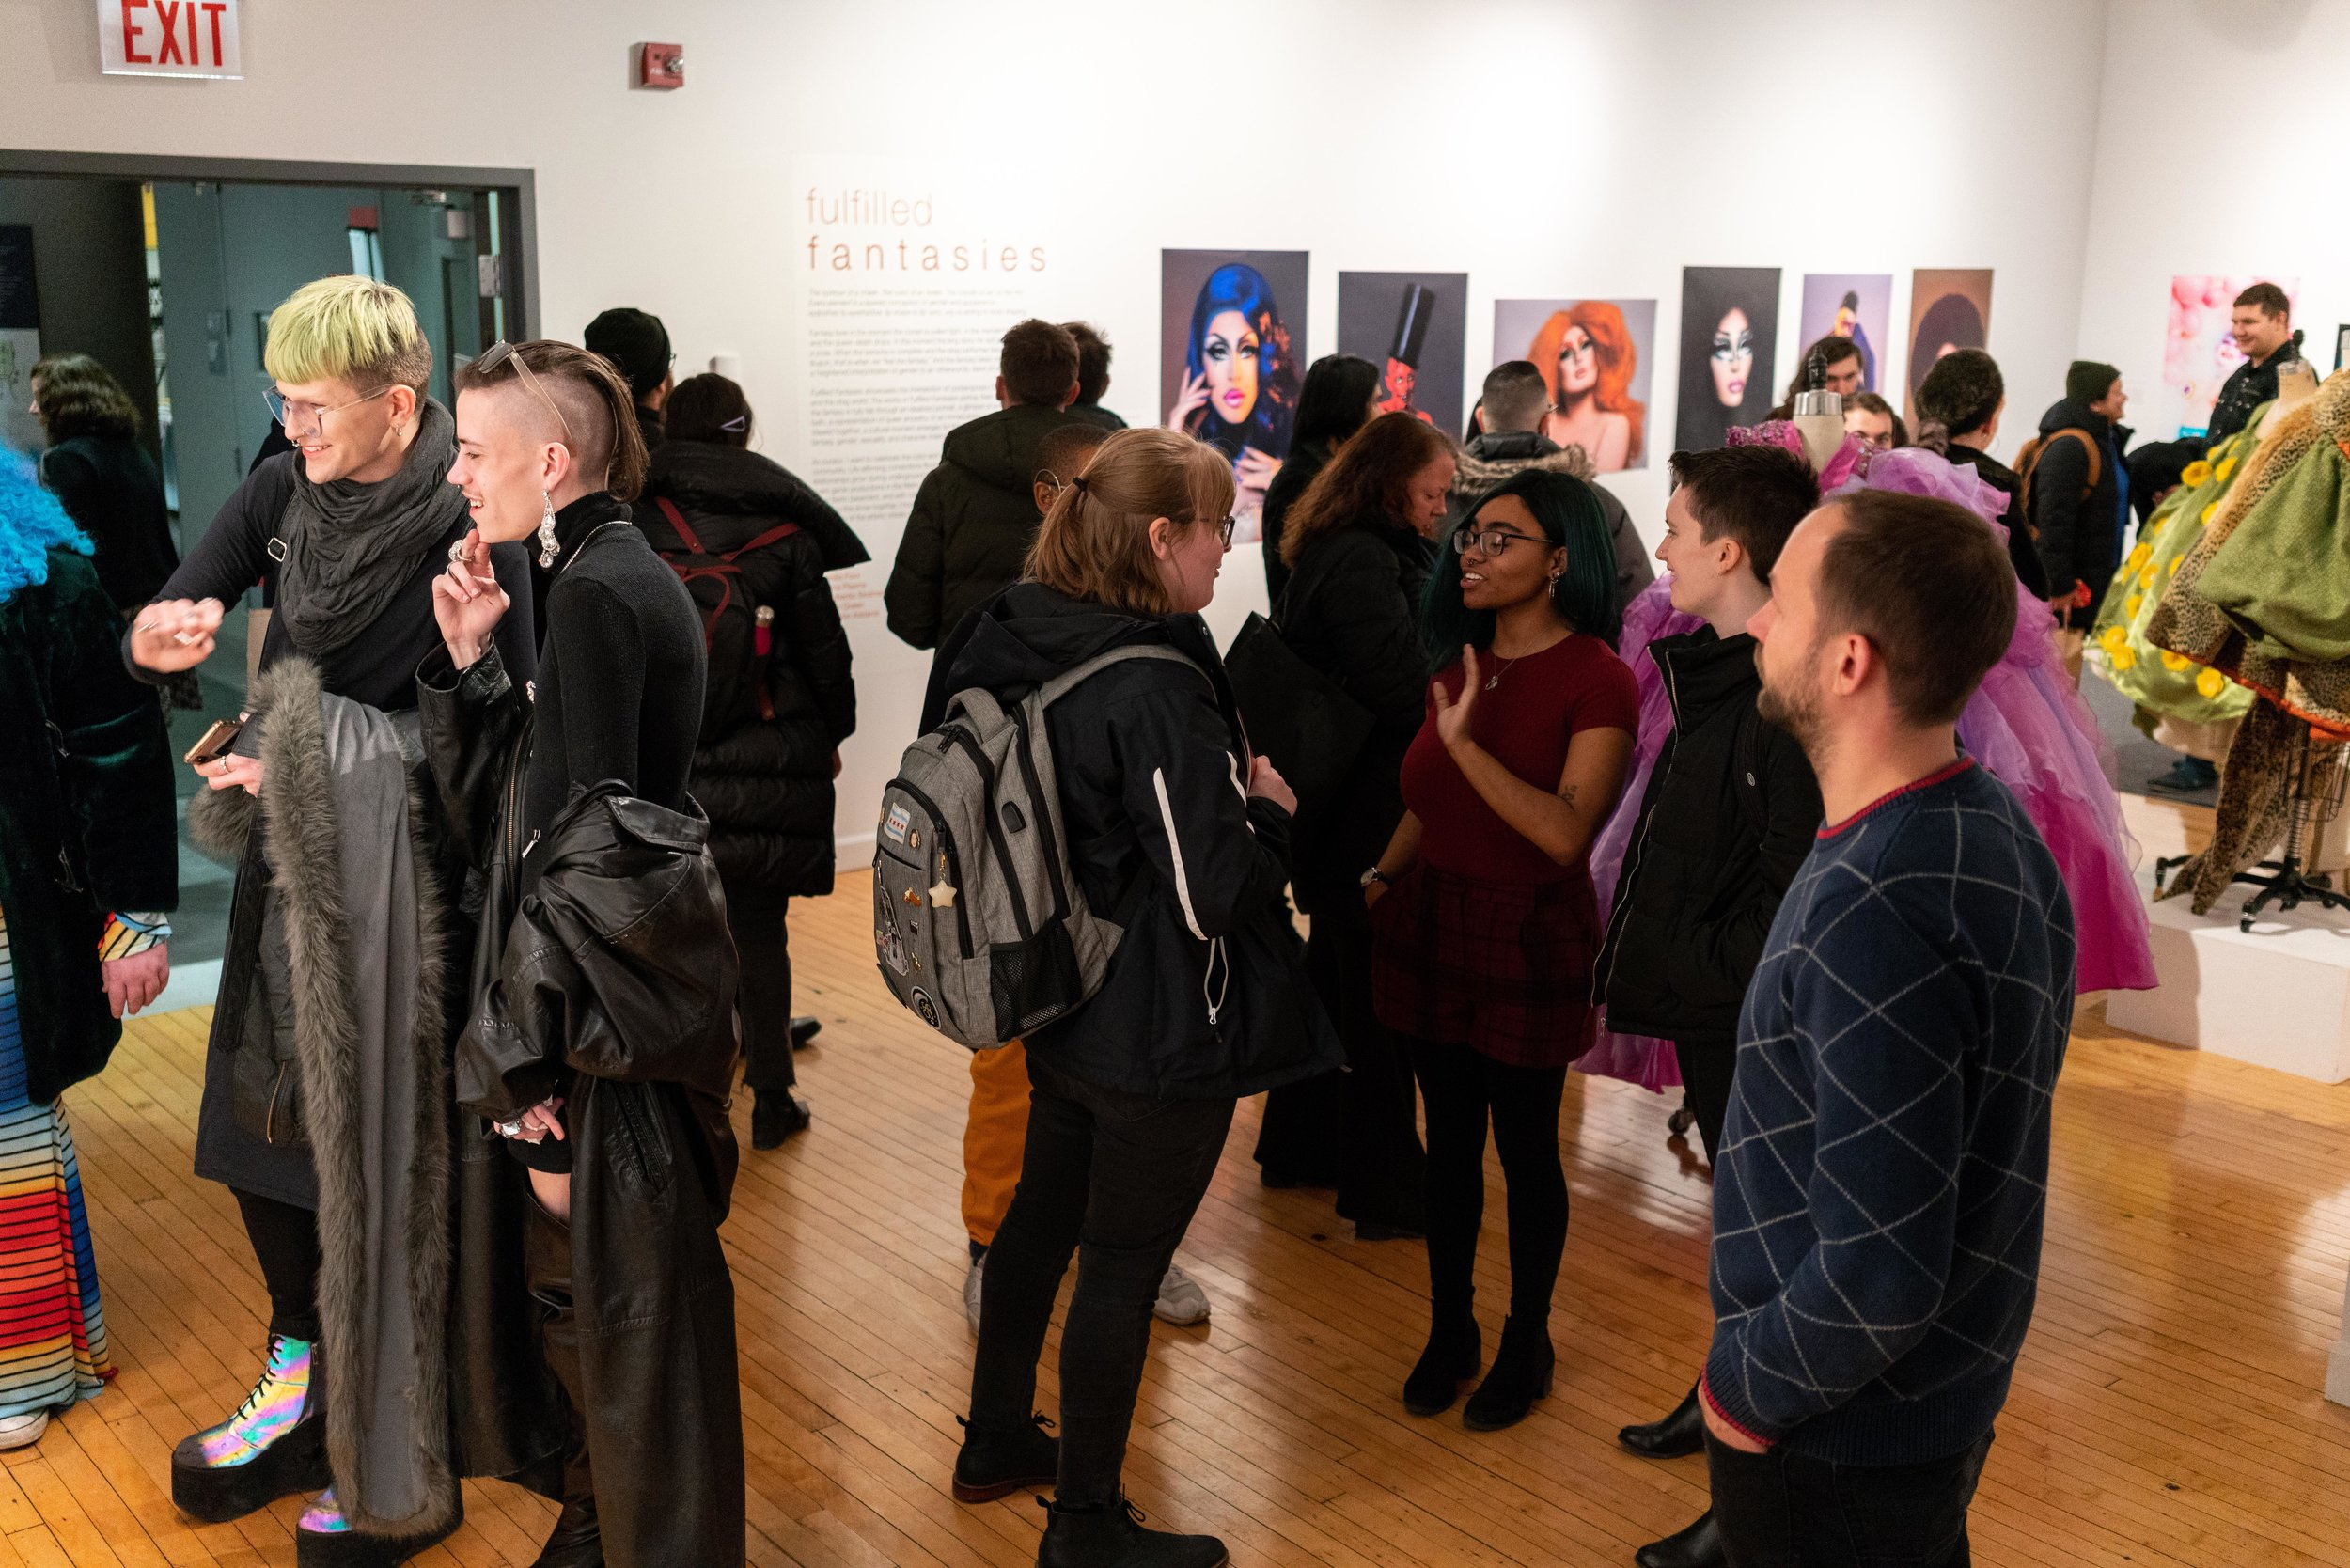 A shot of the attendees from opening night. Adam Ouahmane's photos in background.